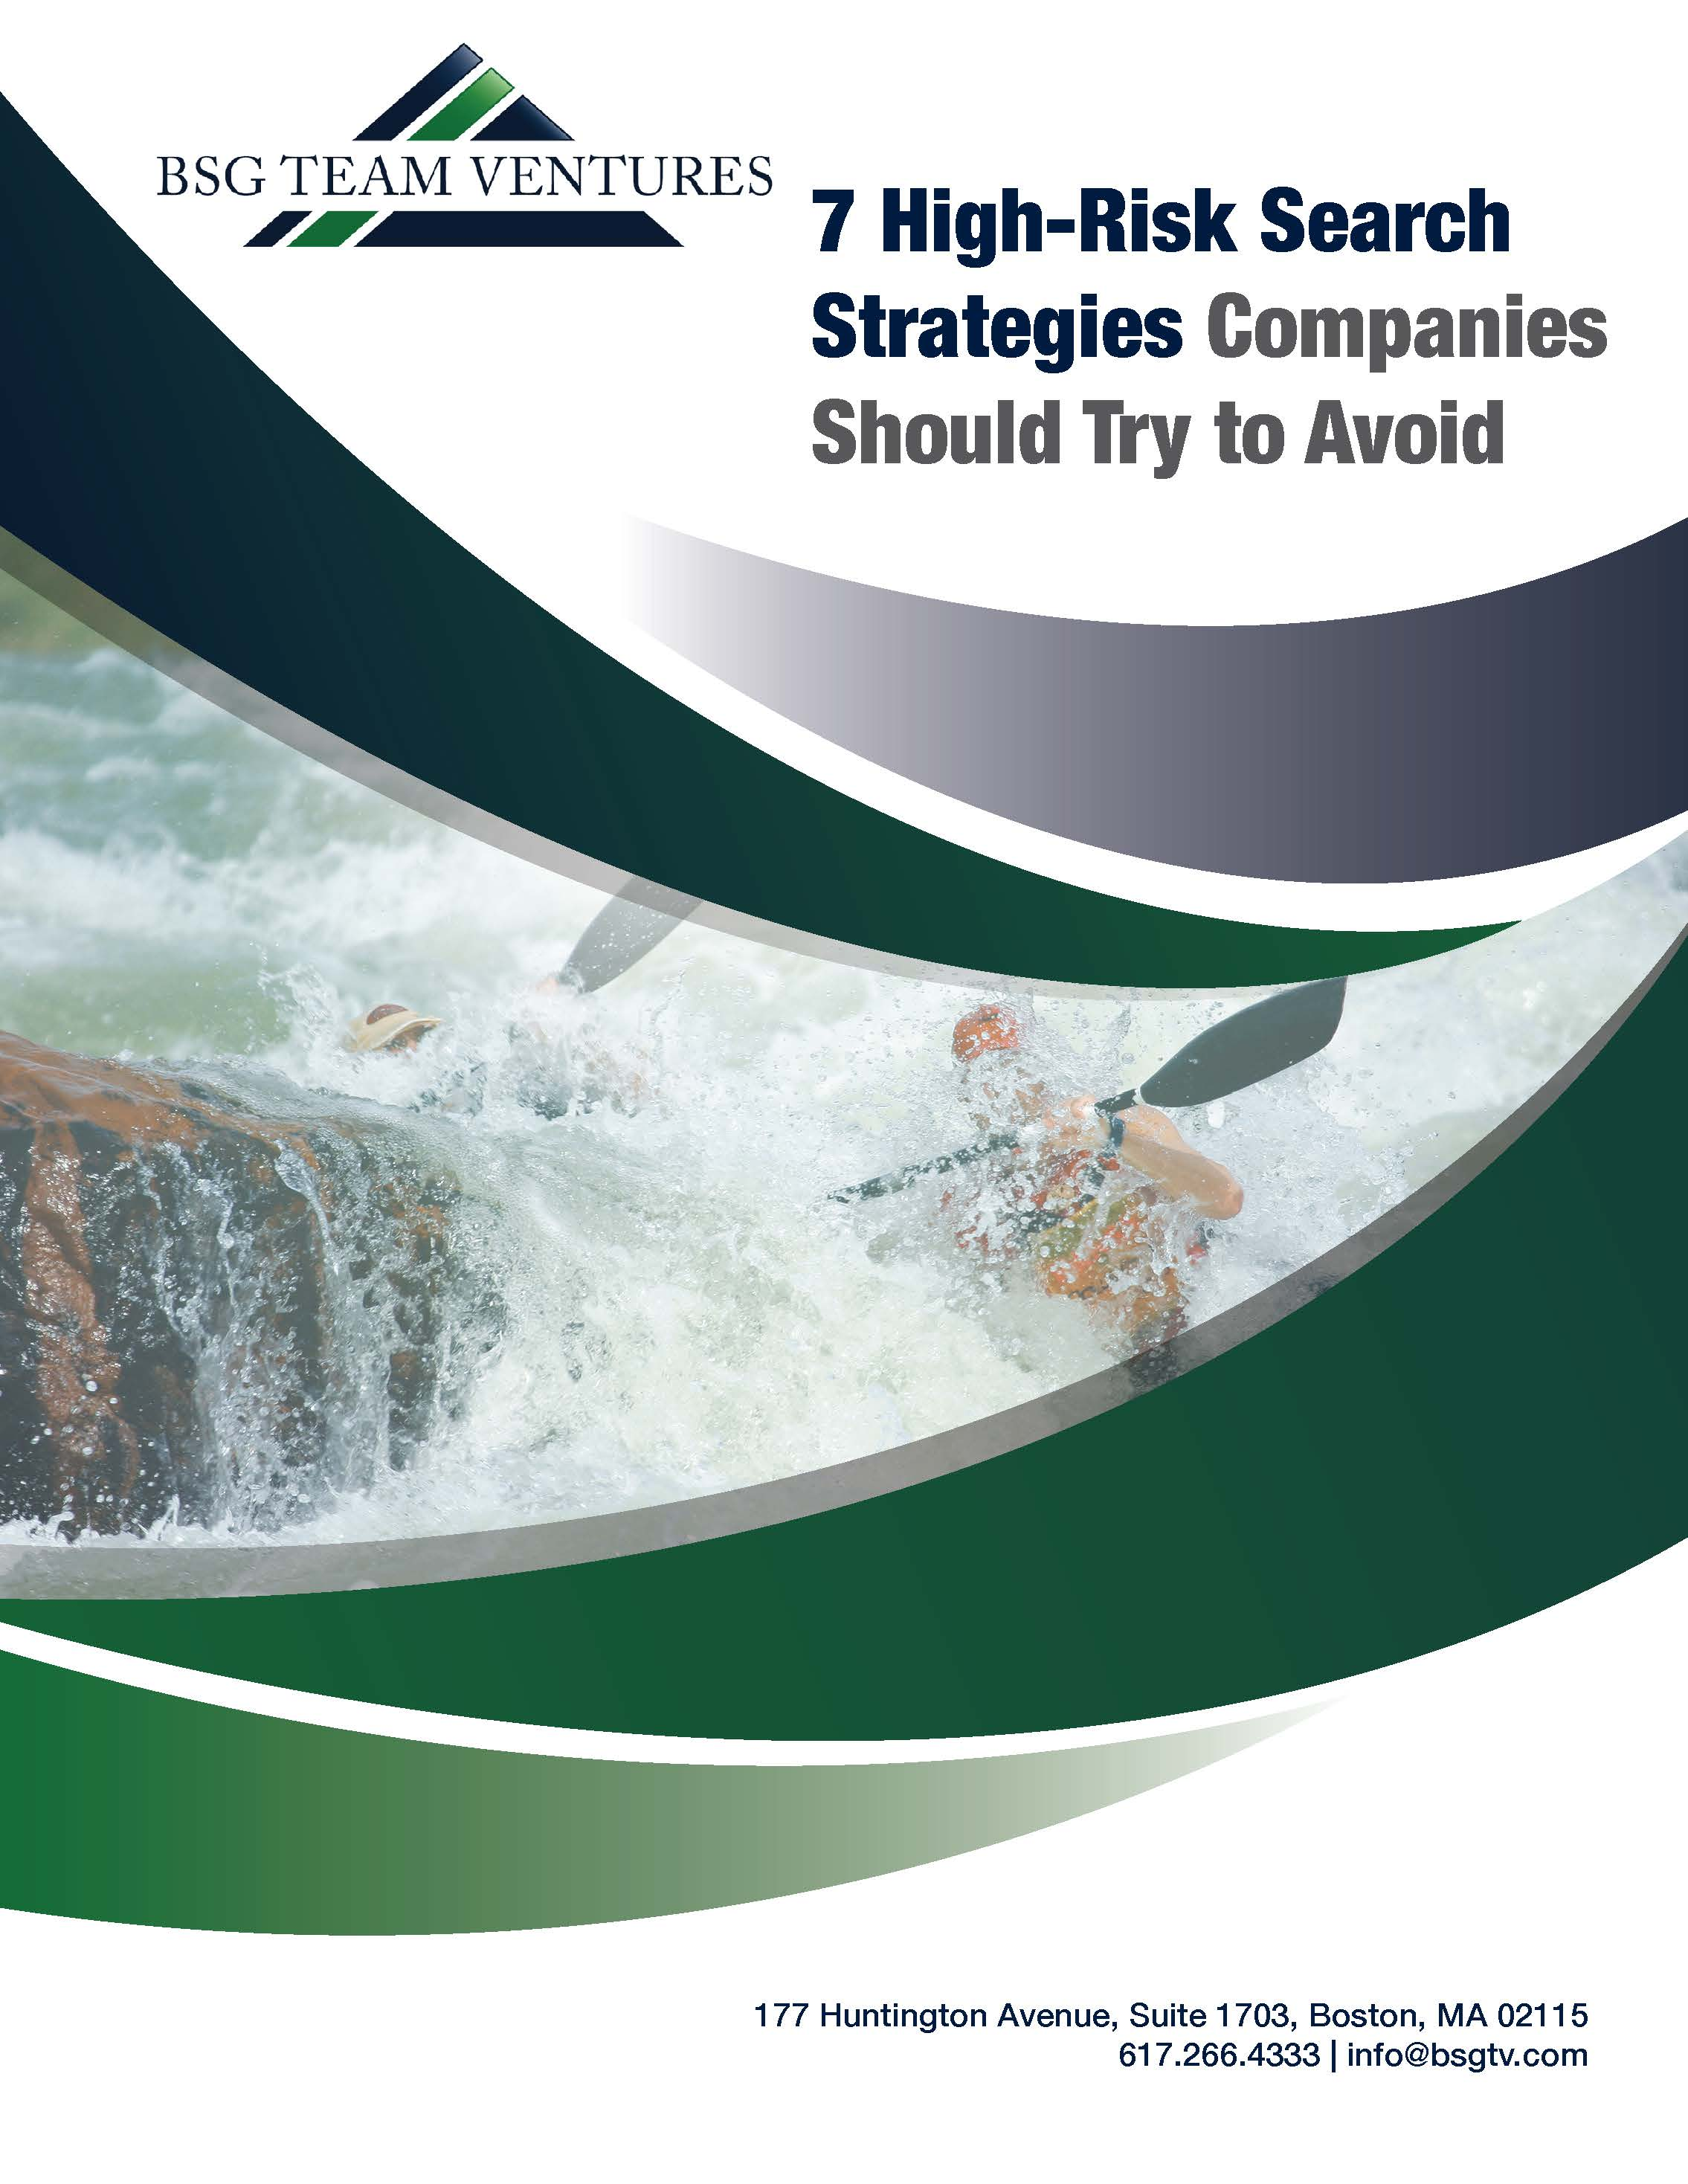 7-search-strategies-to-avoid-bsg_Page_1.jpg